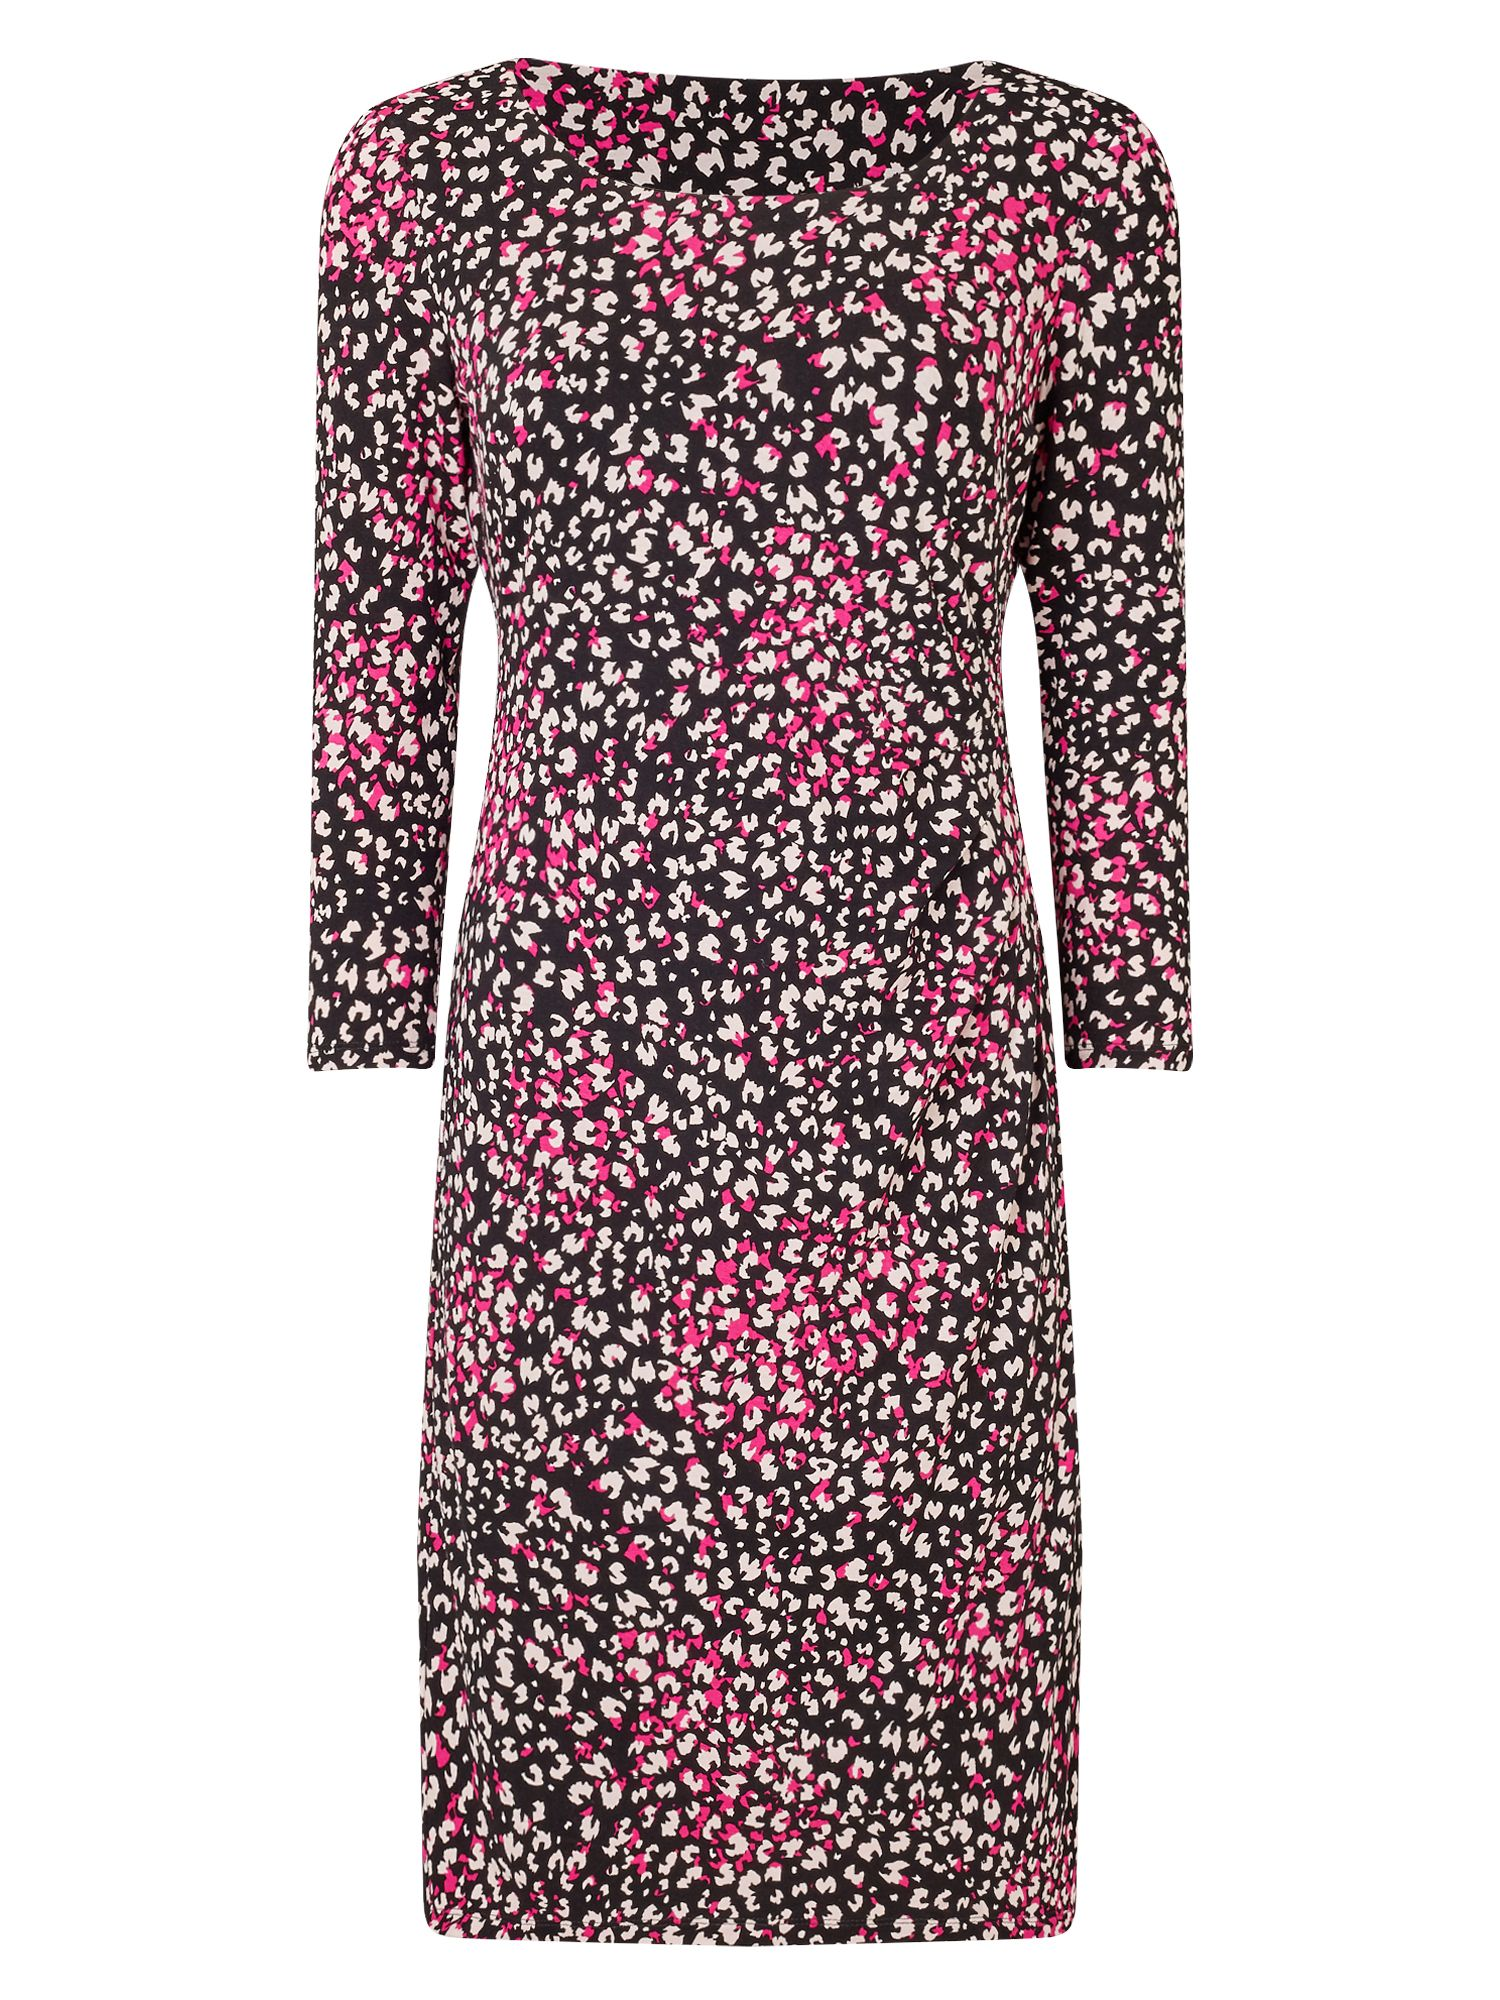 Precis Petite Harlie Abstract Animal Dress, Multi-Coloured